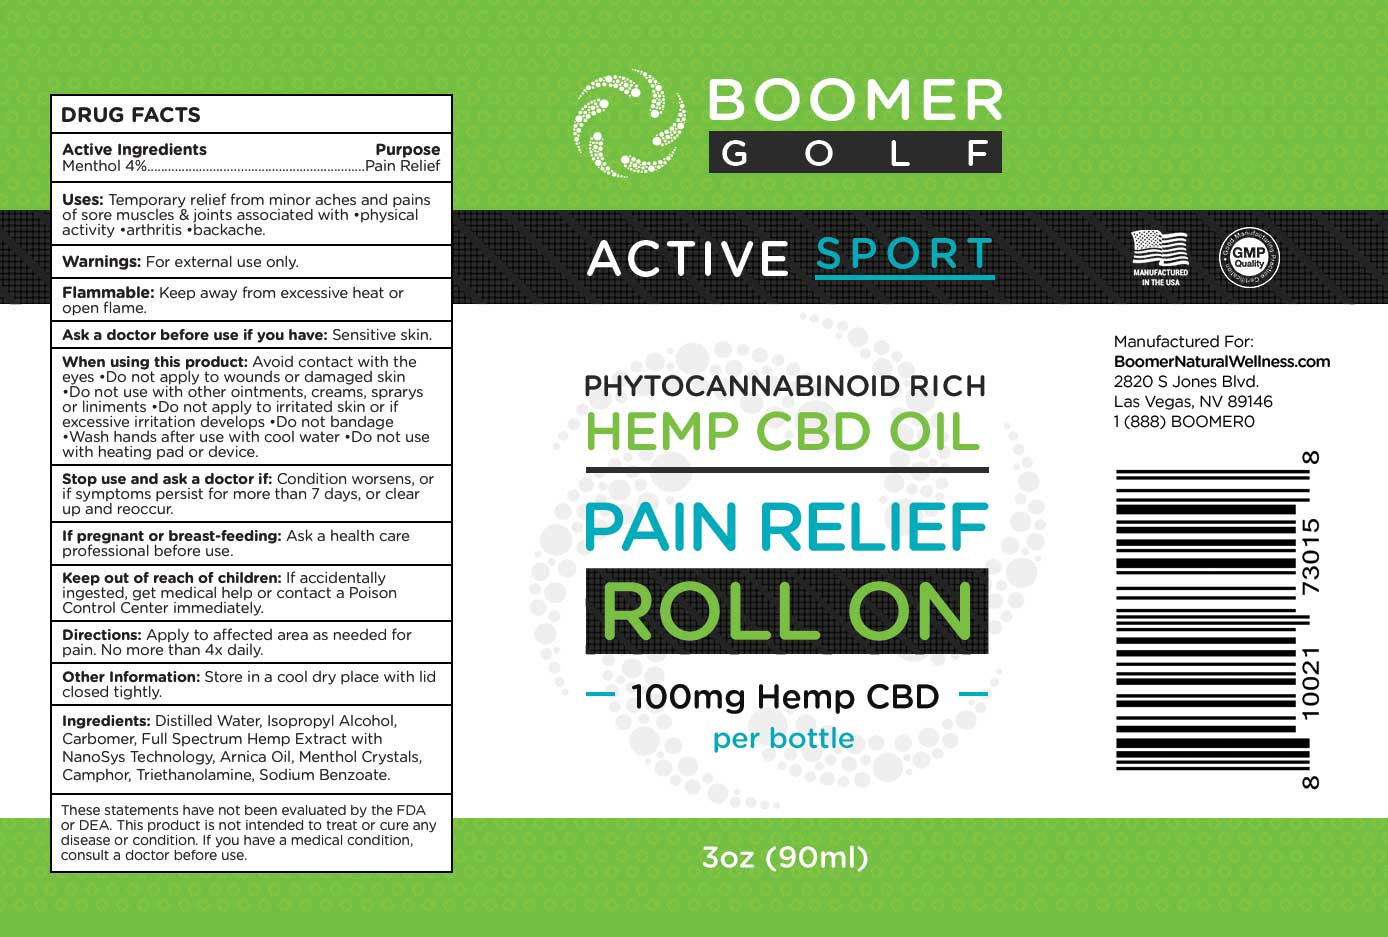 Golf Pain Relief Roll-On